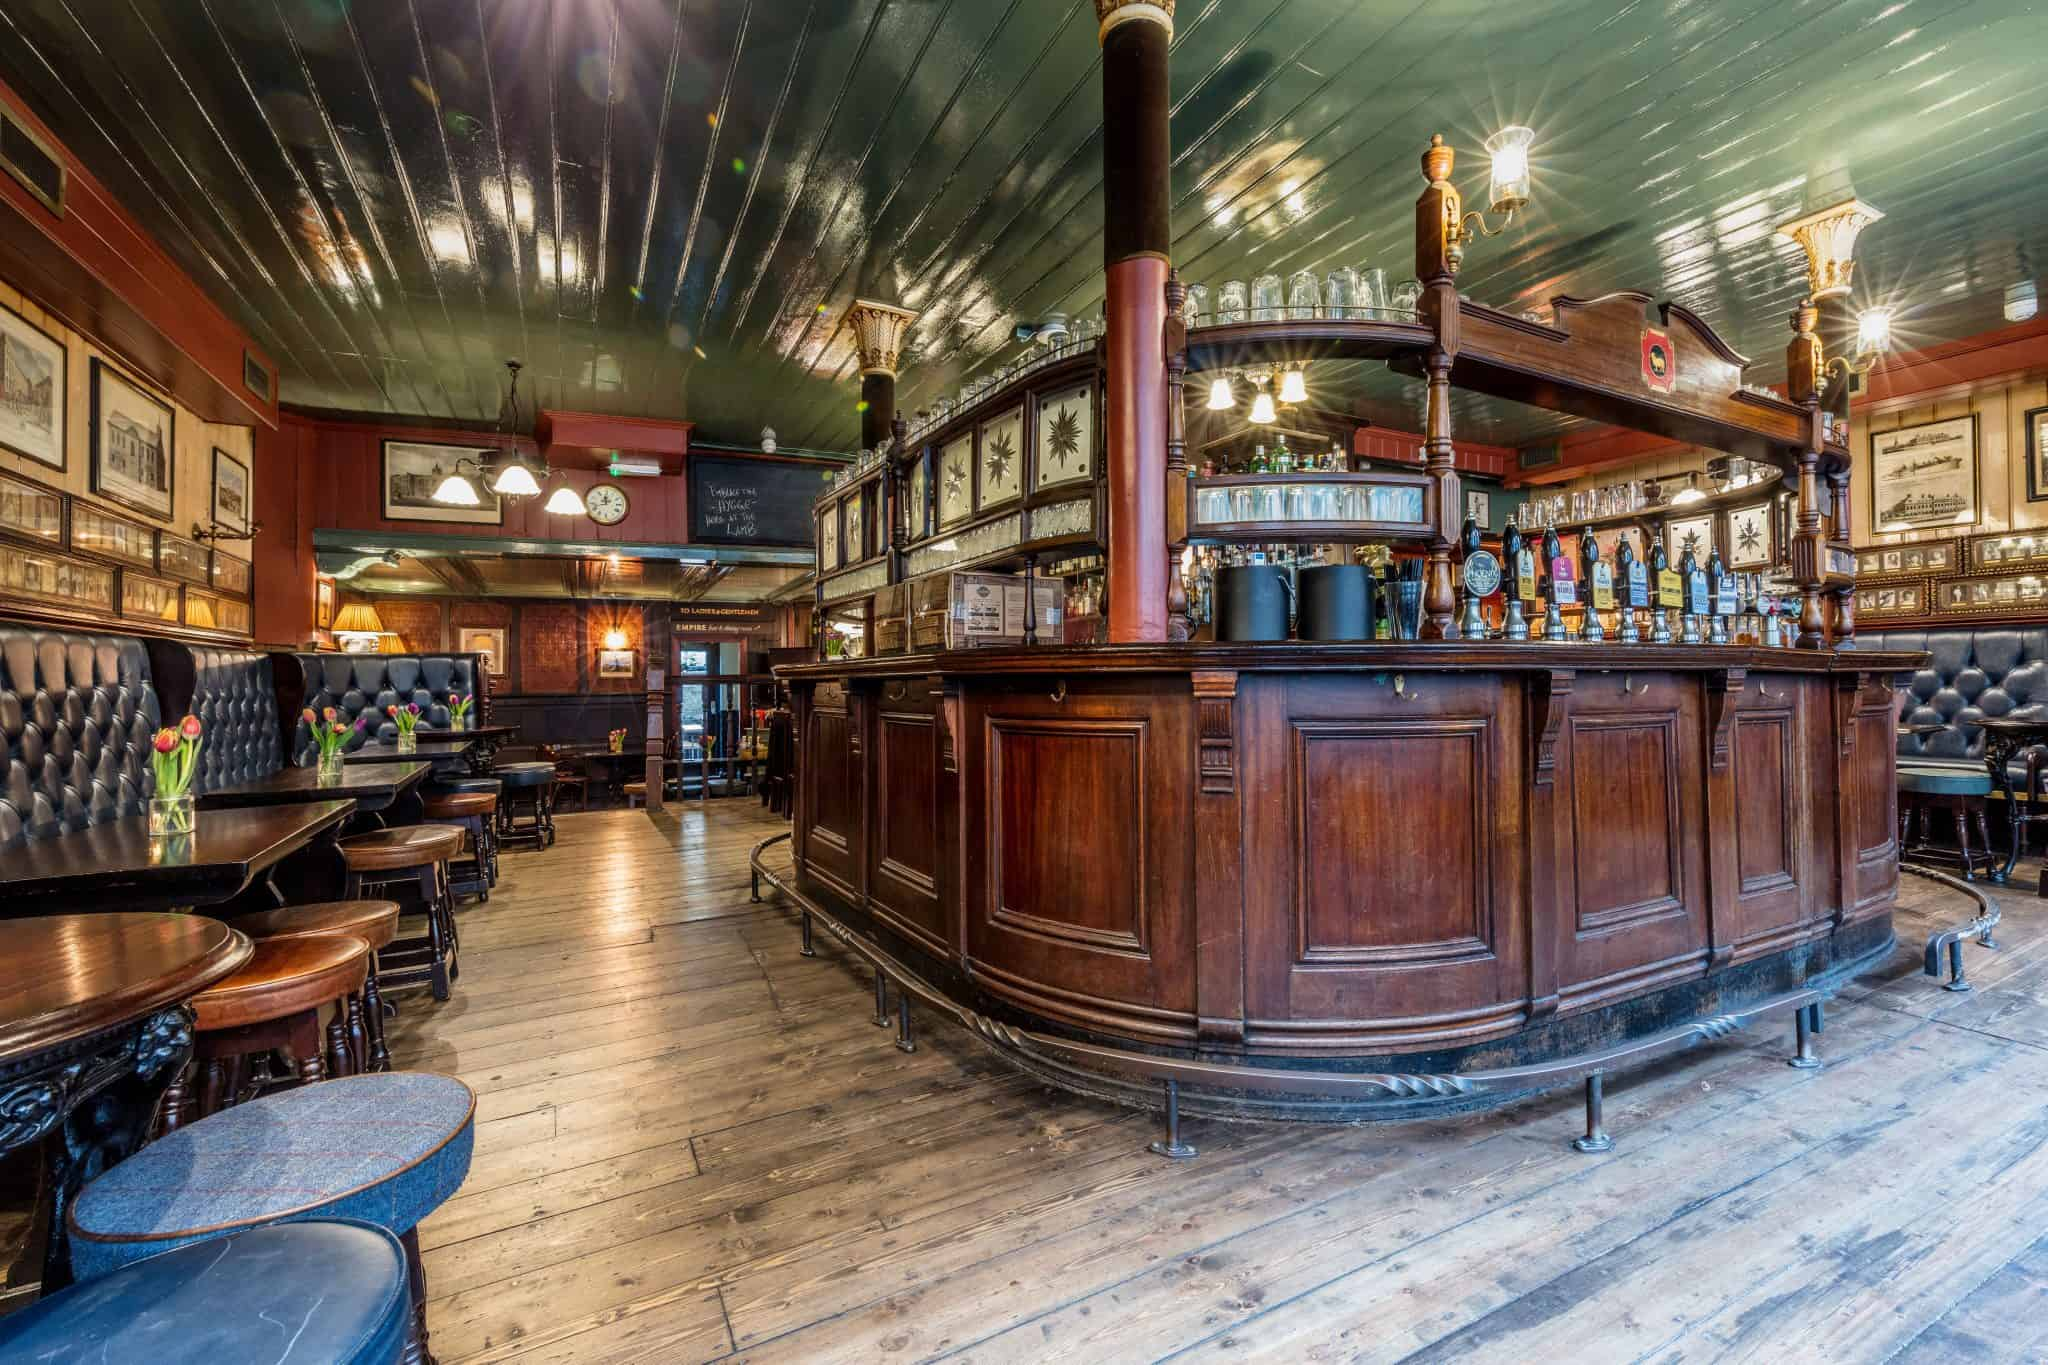 The Lamb Conduit Street best pubs in Central London